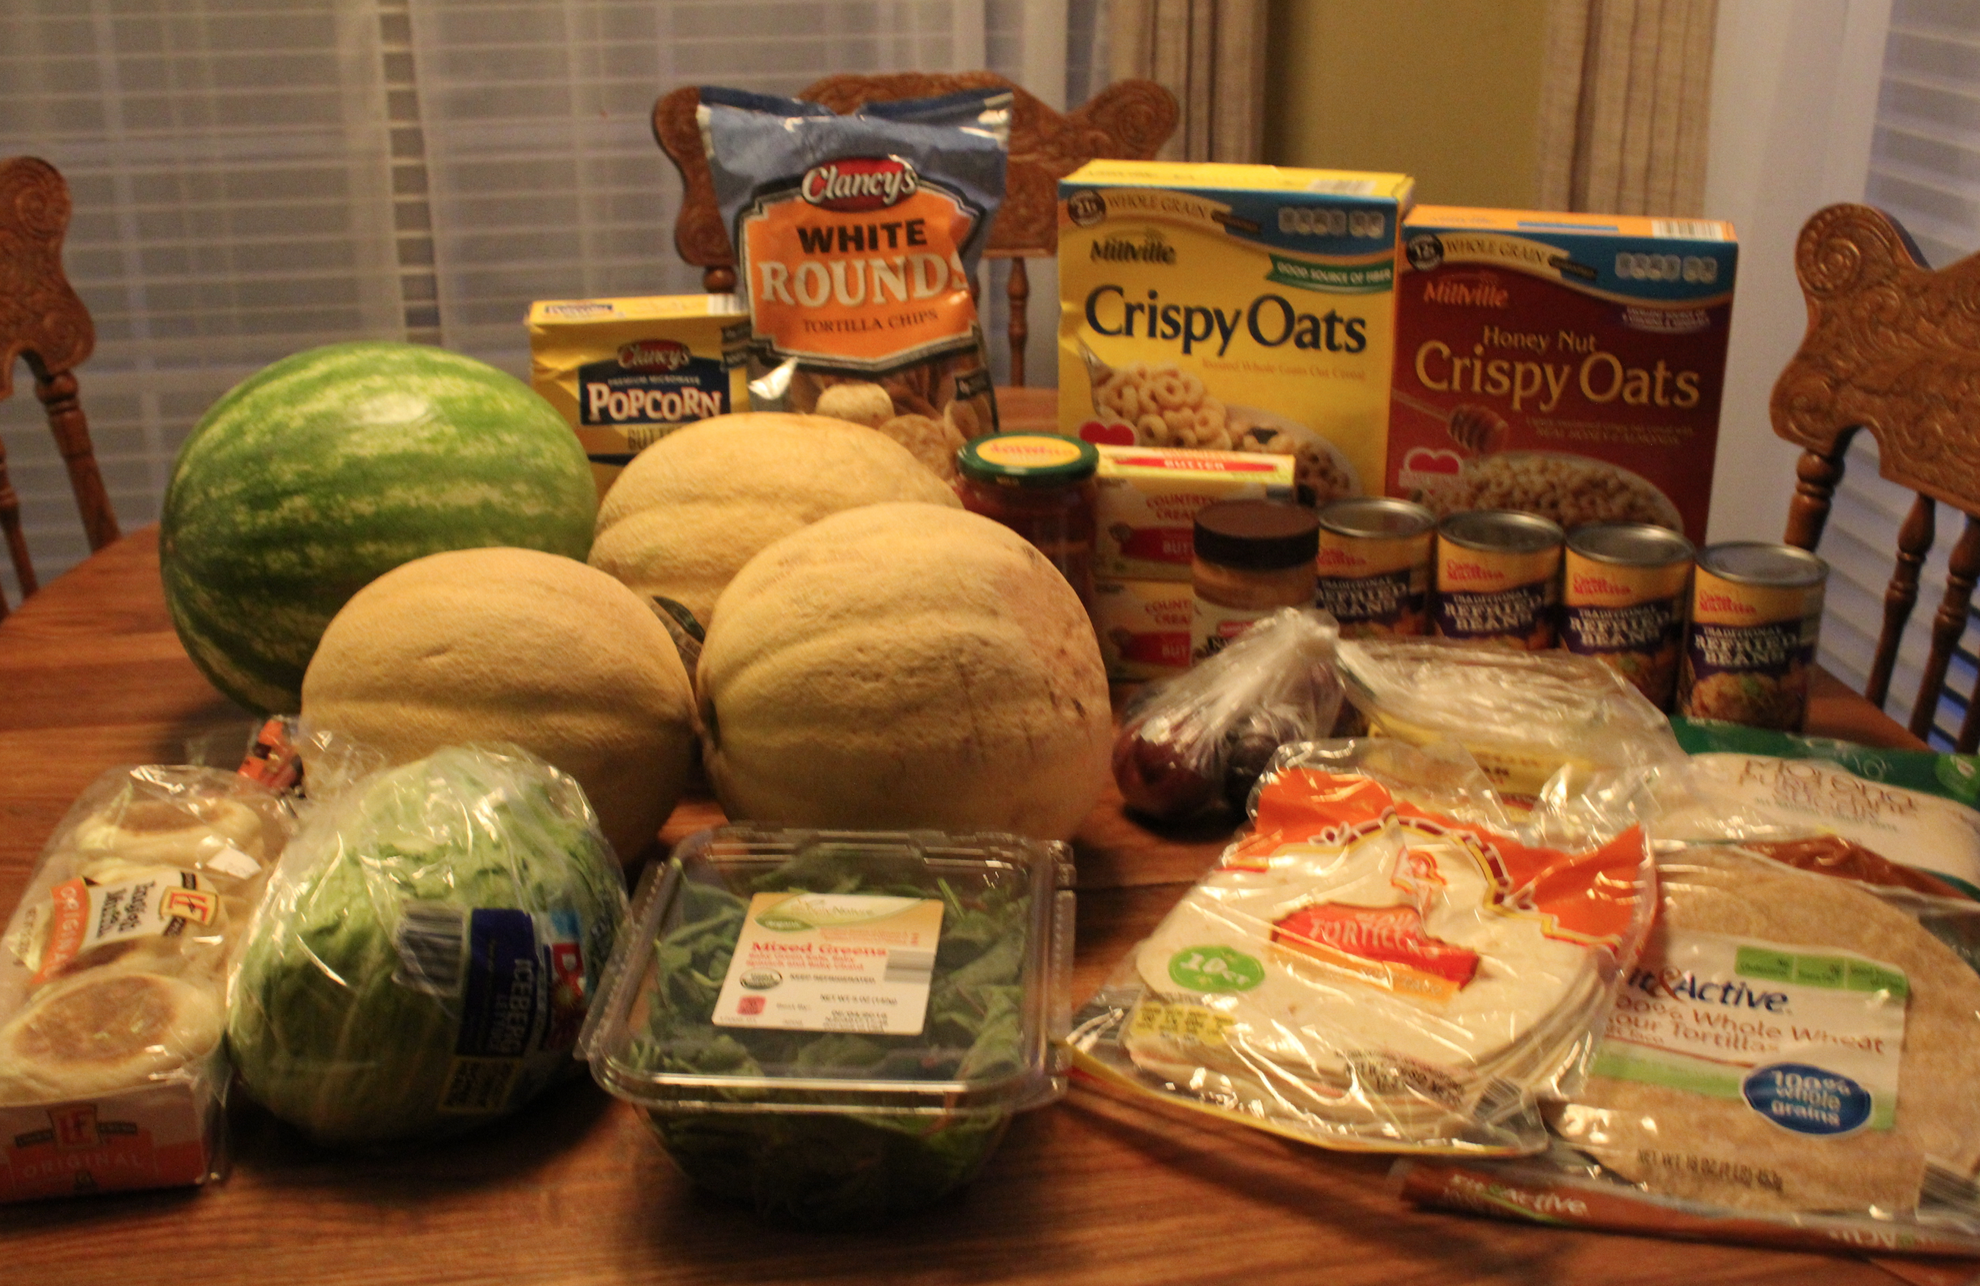 I only spent $35 and got all of these groceries!